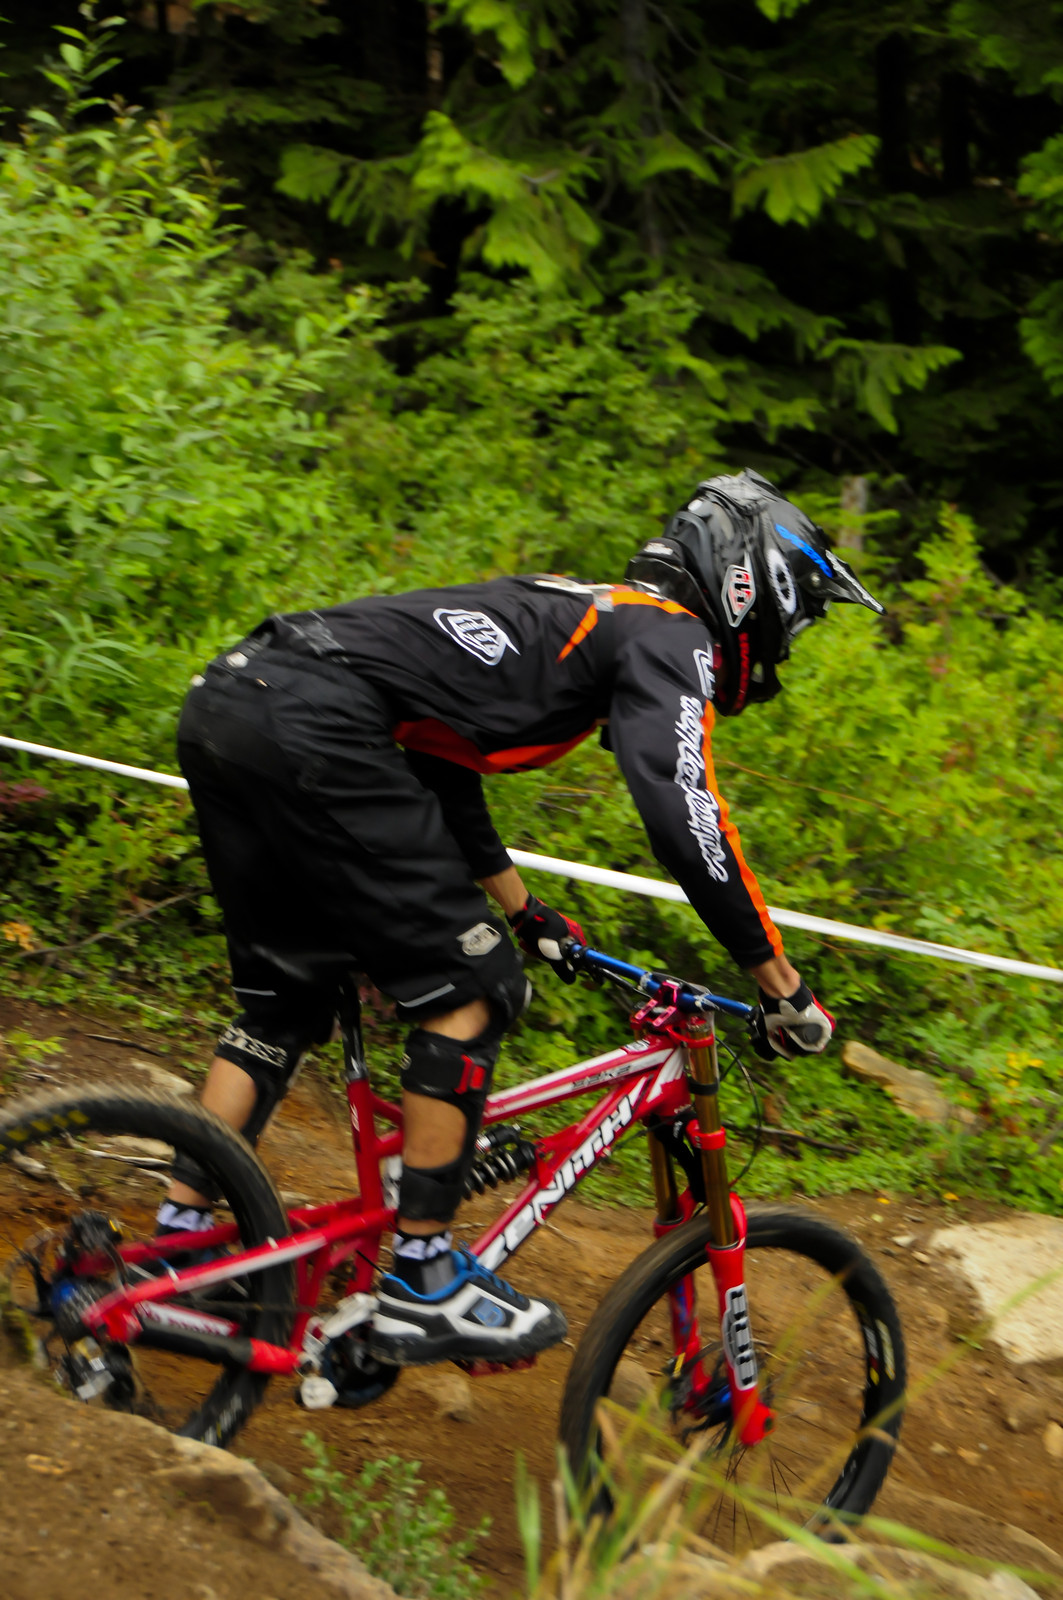 Canadian Open serenelli - ezefaccio - Mountain Biking Pictures - Vital MTB